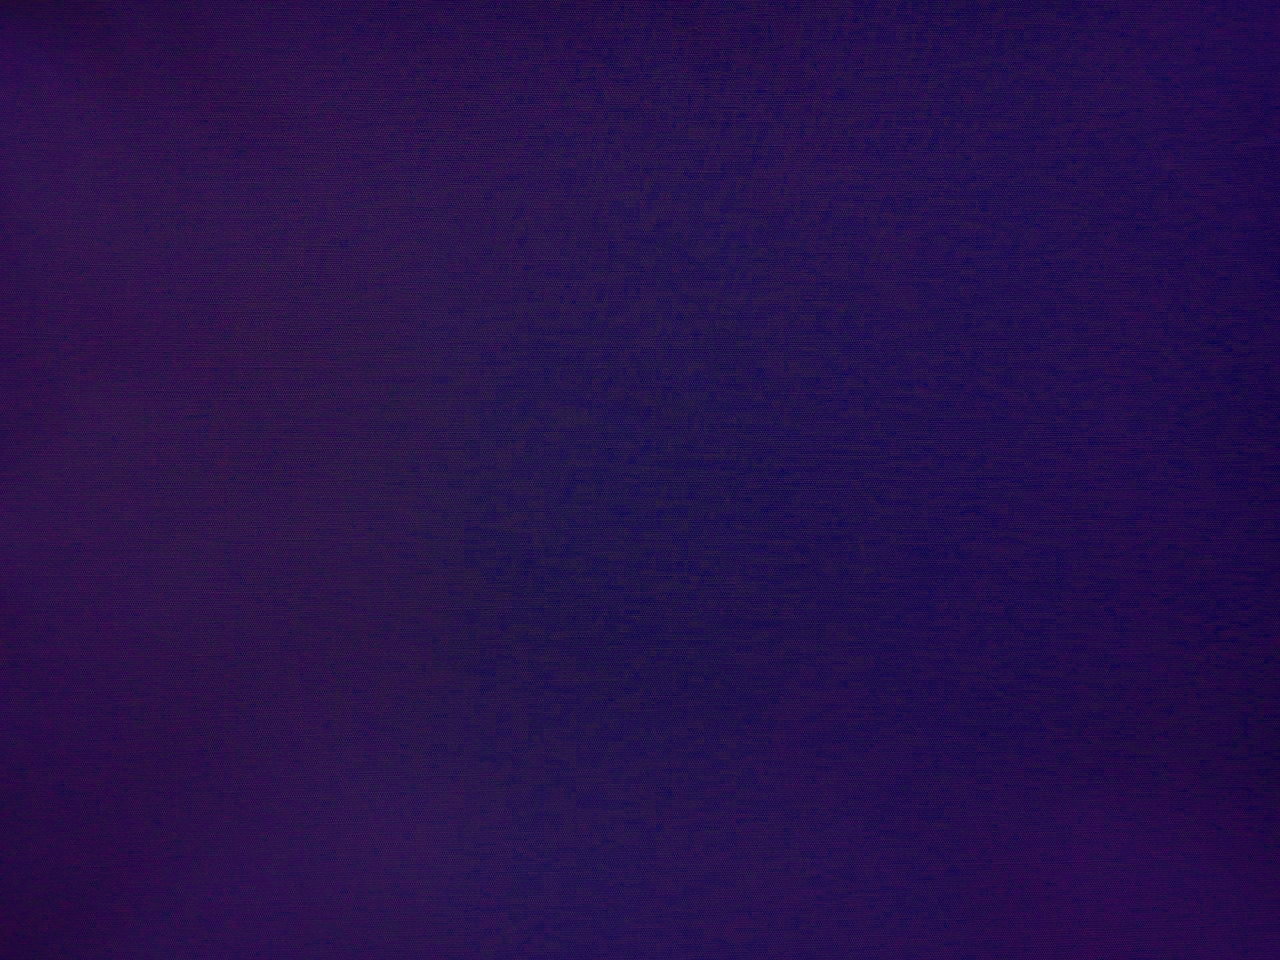 Dark Purple Navy Solid Color 1 2 Yard Pure Cotton Fabric